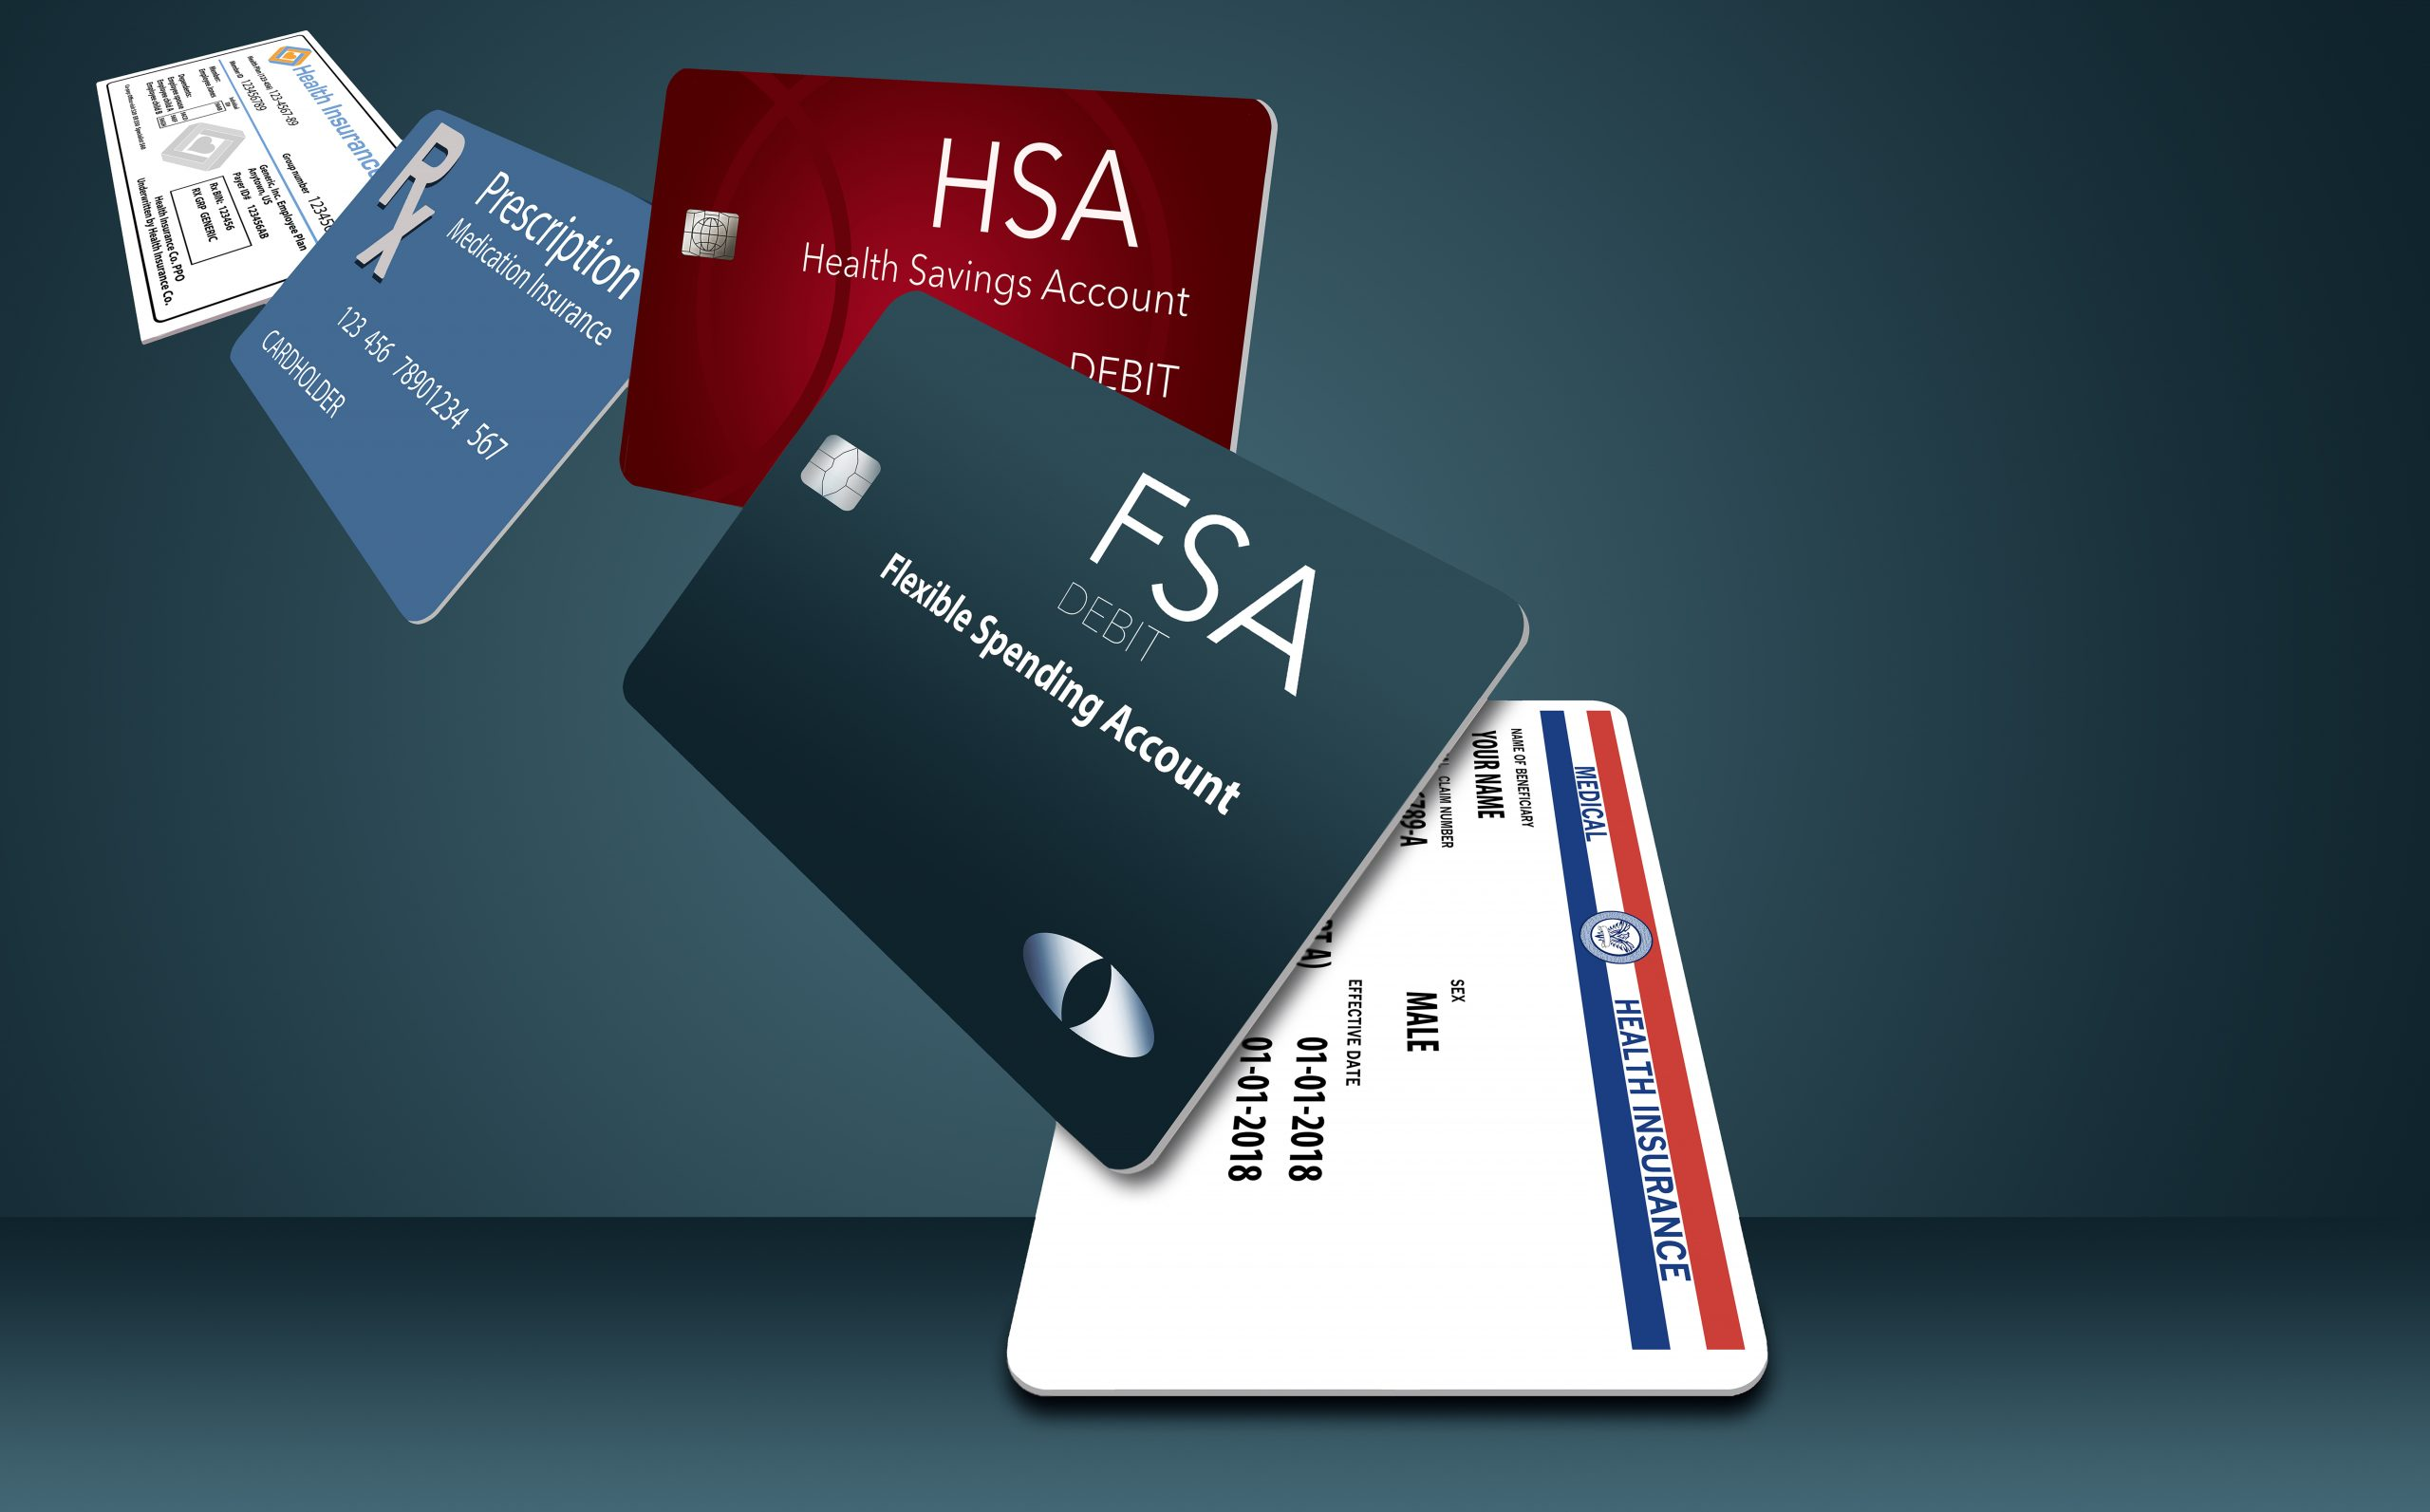 HSA credit cards